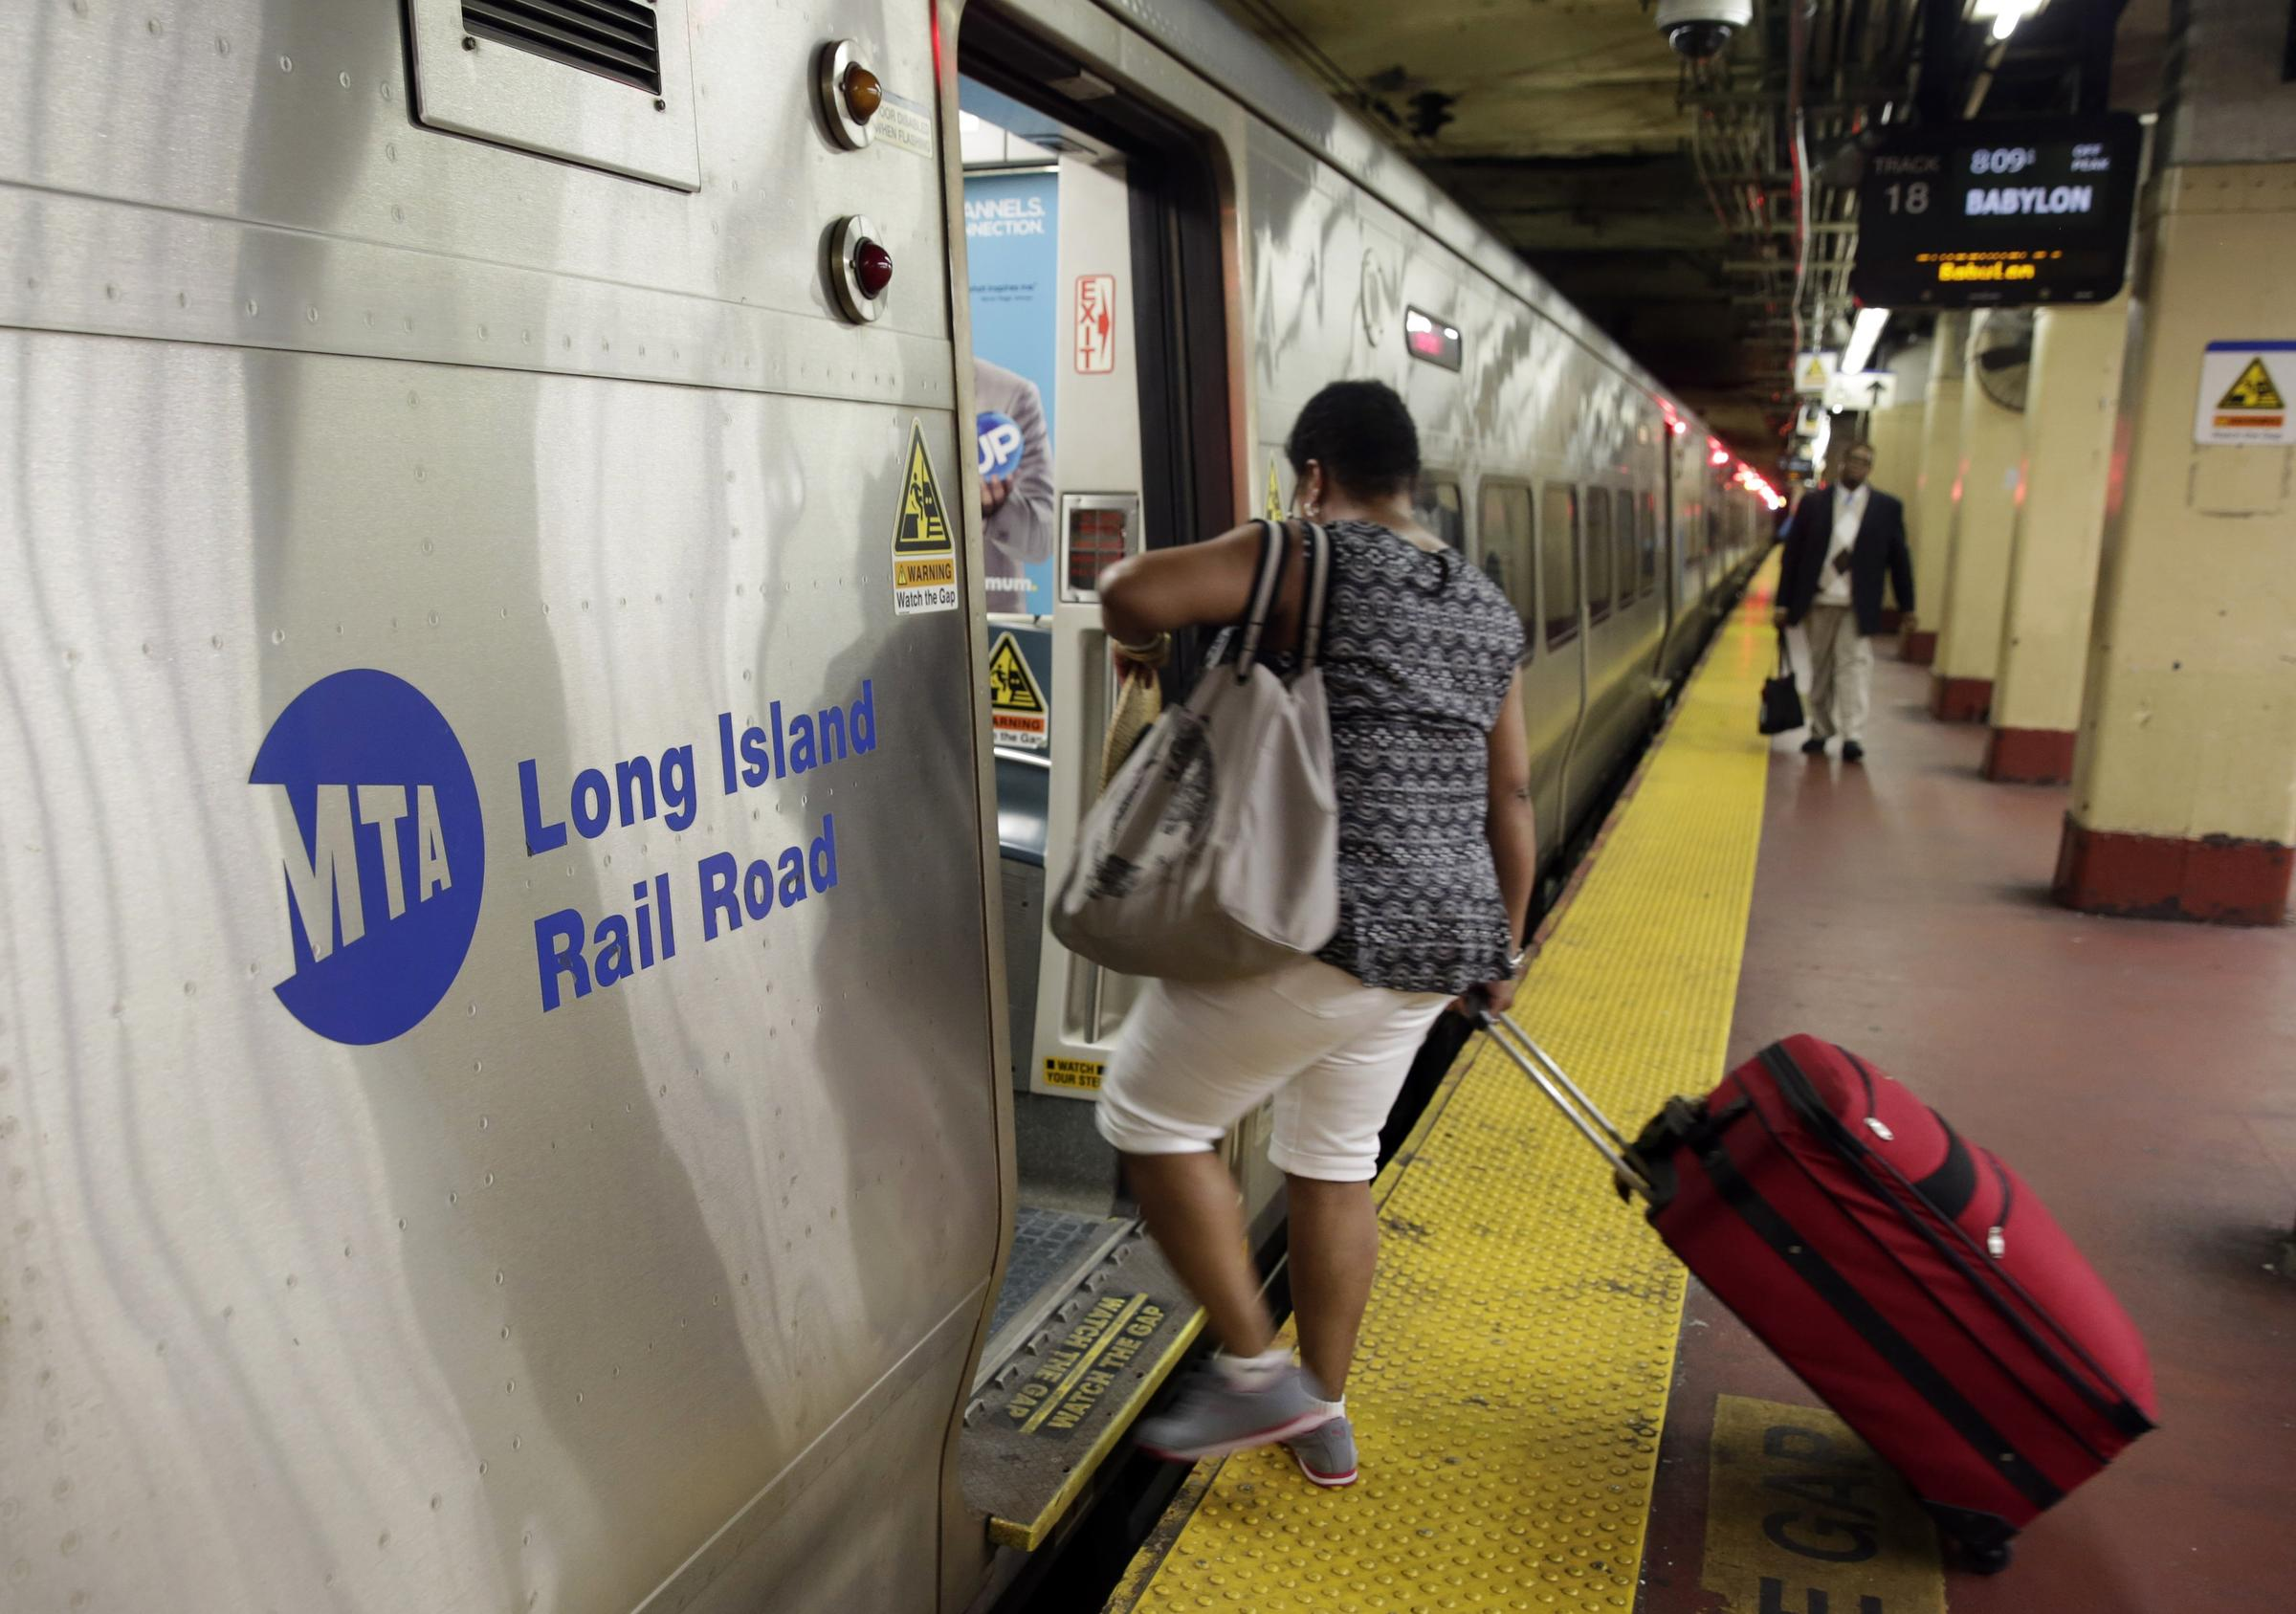 Limited LIRR Long Beach Branch Service Restored After Disabled Train Forces Suspension